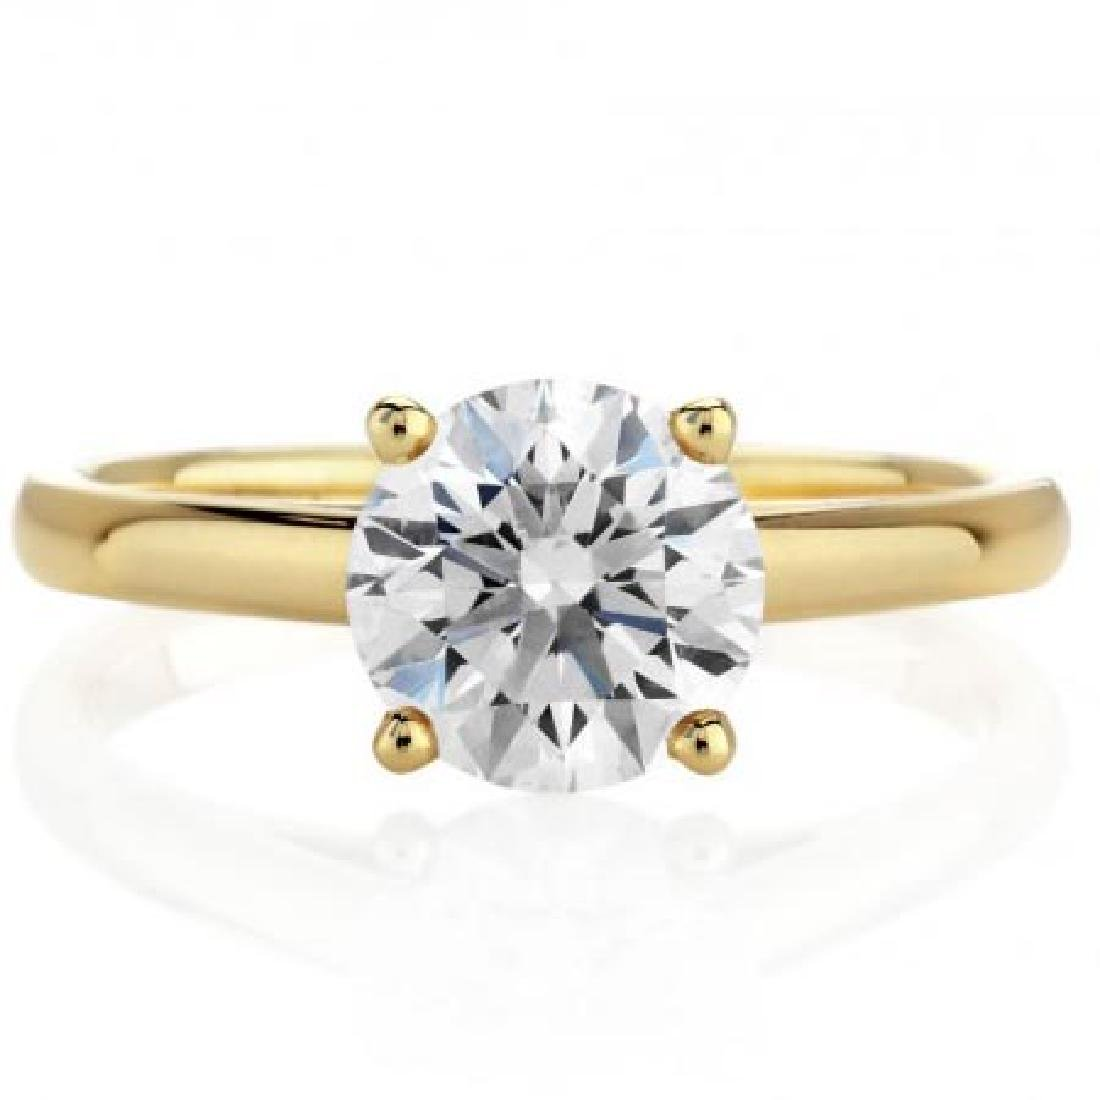 CERTIFIED 0.77 CTW ROUND I/I1 SOLITAIRE RING IN 14K YEL